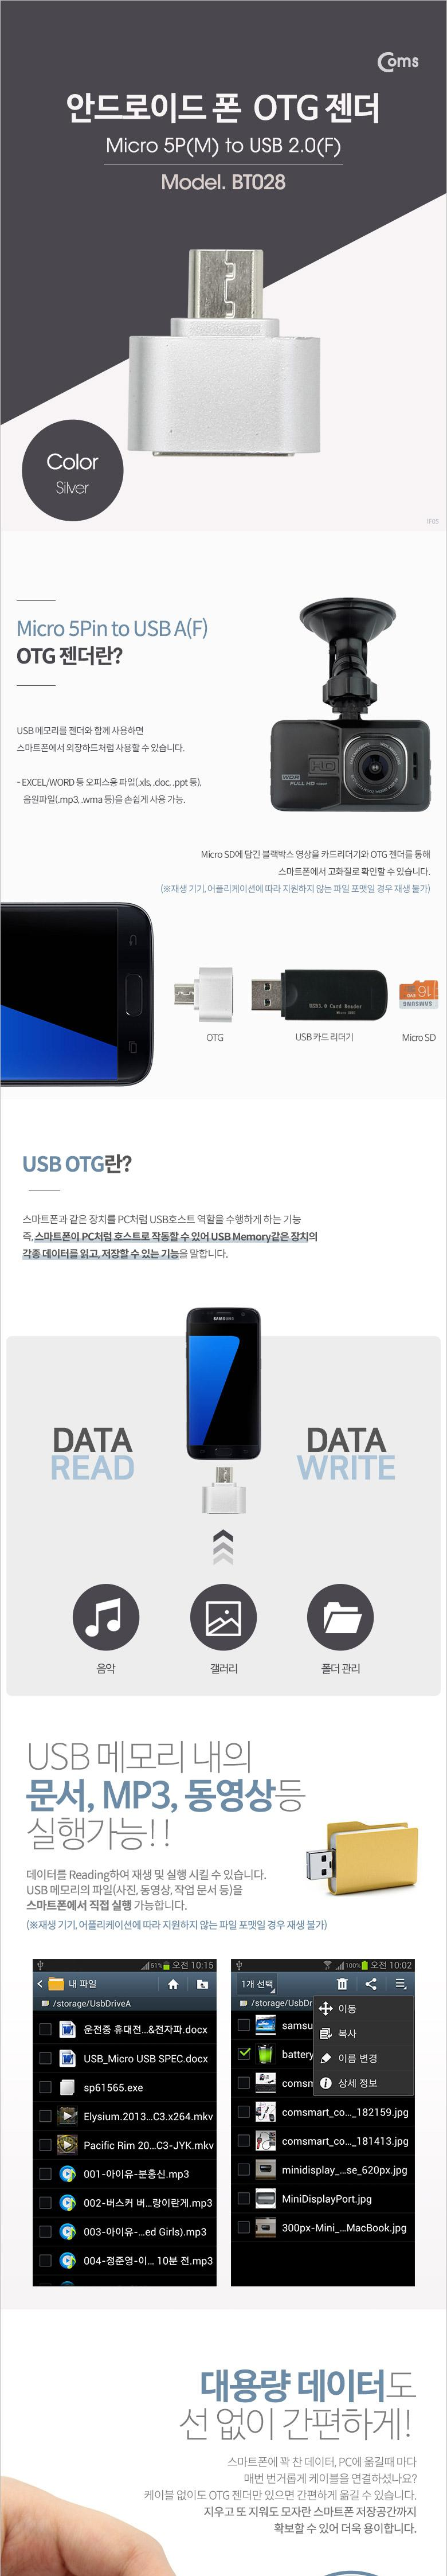 Coms USB3.1 to USB3.0 Cable Type Gender WH5552 19CM